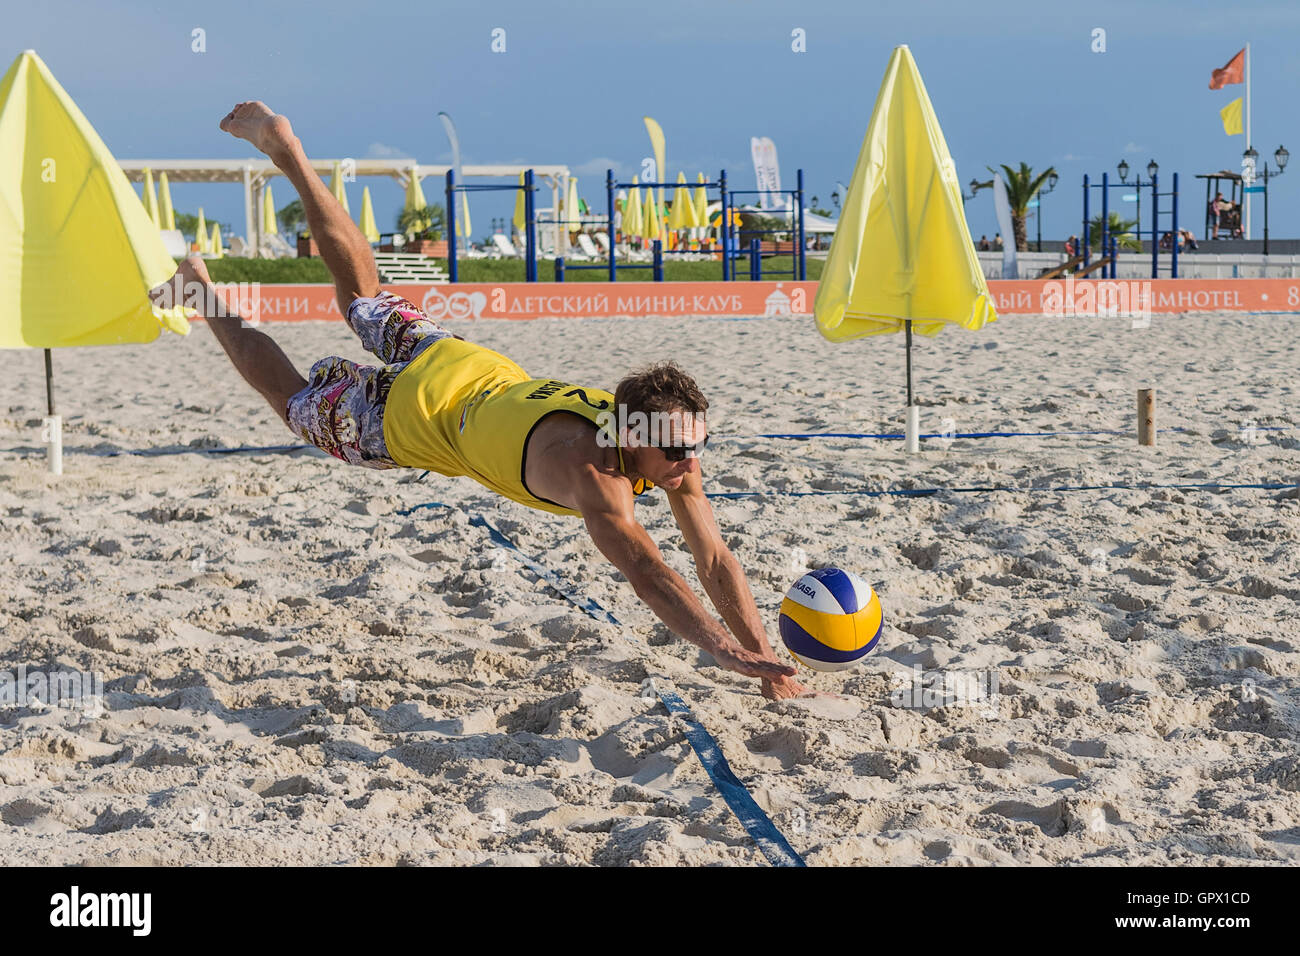 Young man in motion plays in beach volleyball. - Stock Image